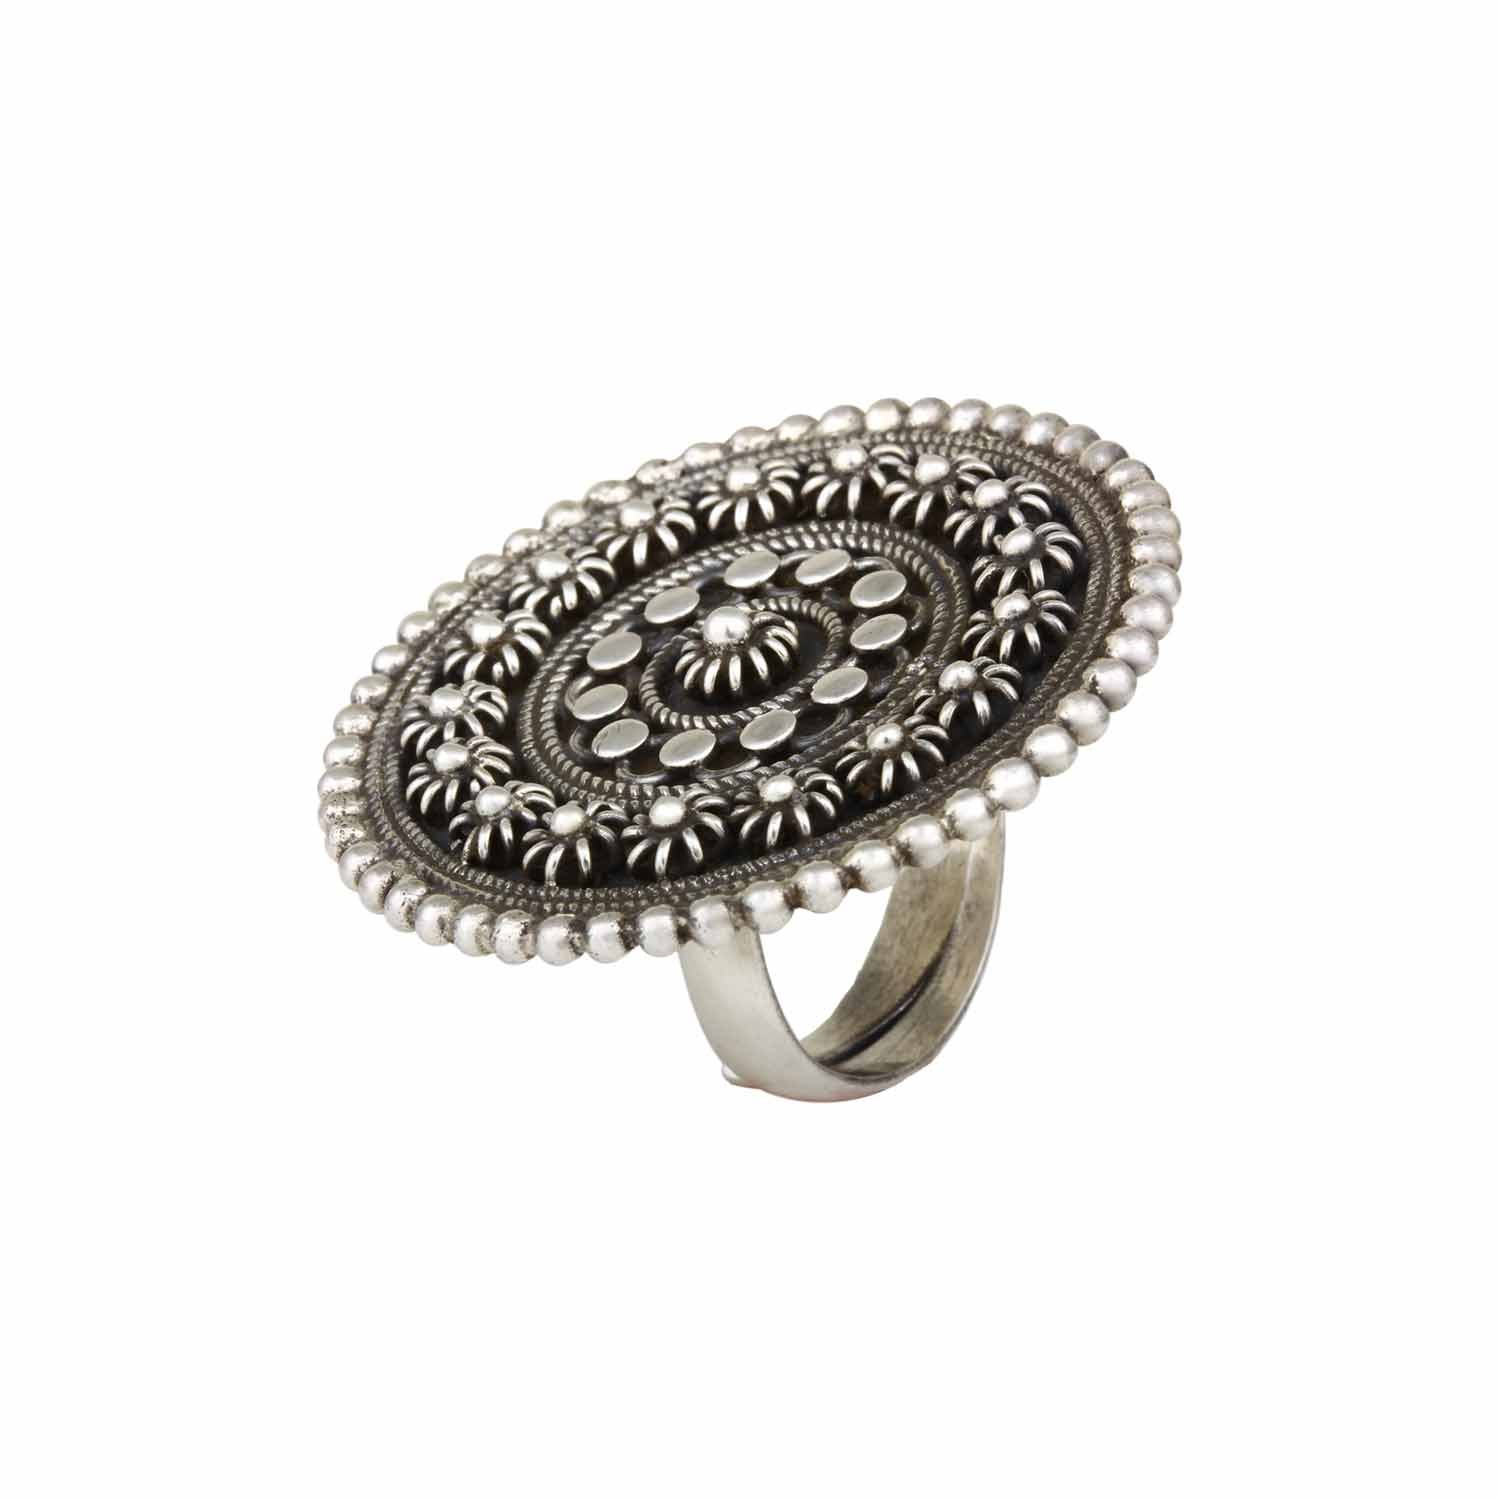 Banjara Silver Statement Disc Ring - Adjustable